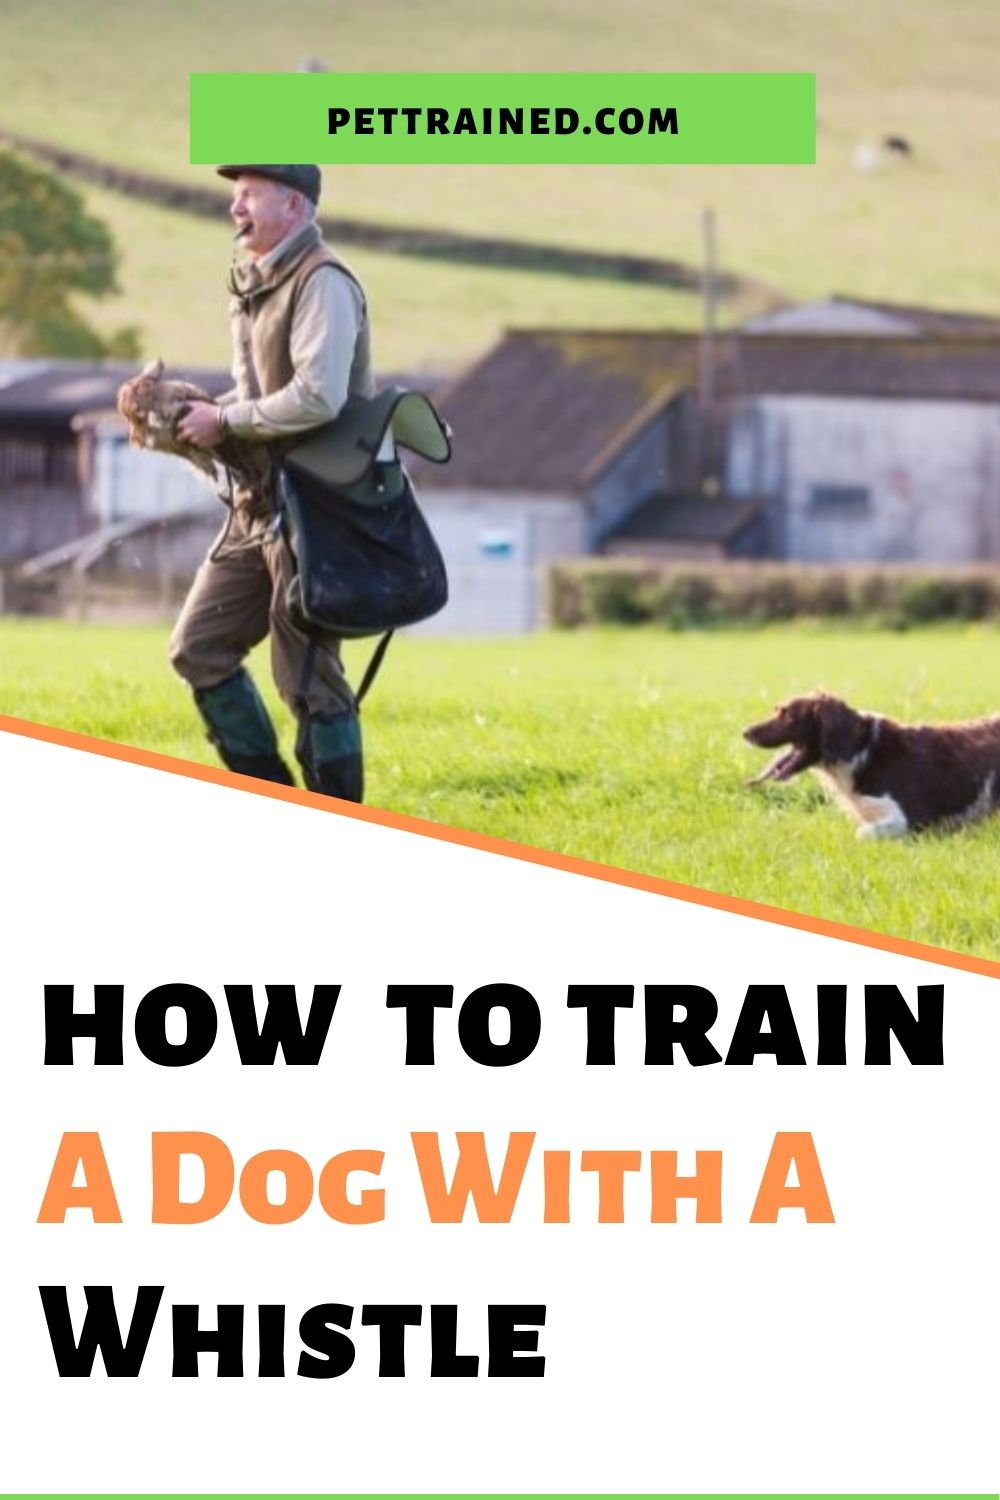 Train your dog with a dog whistle